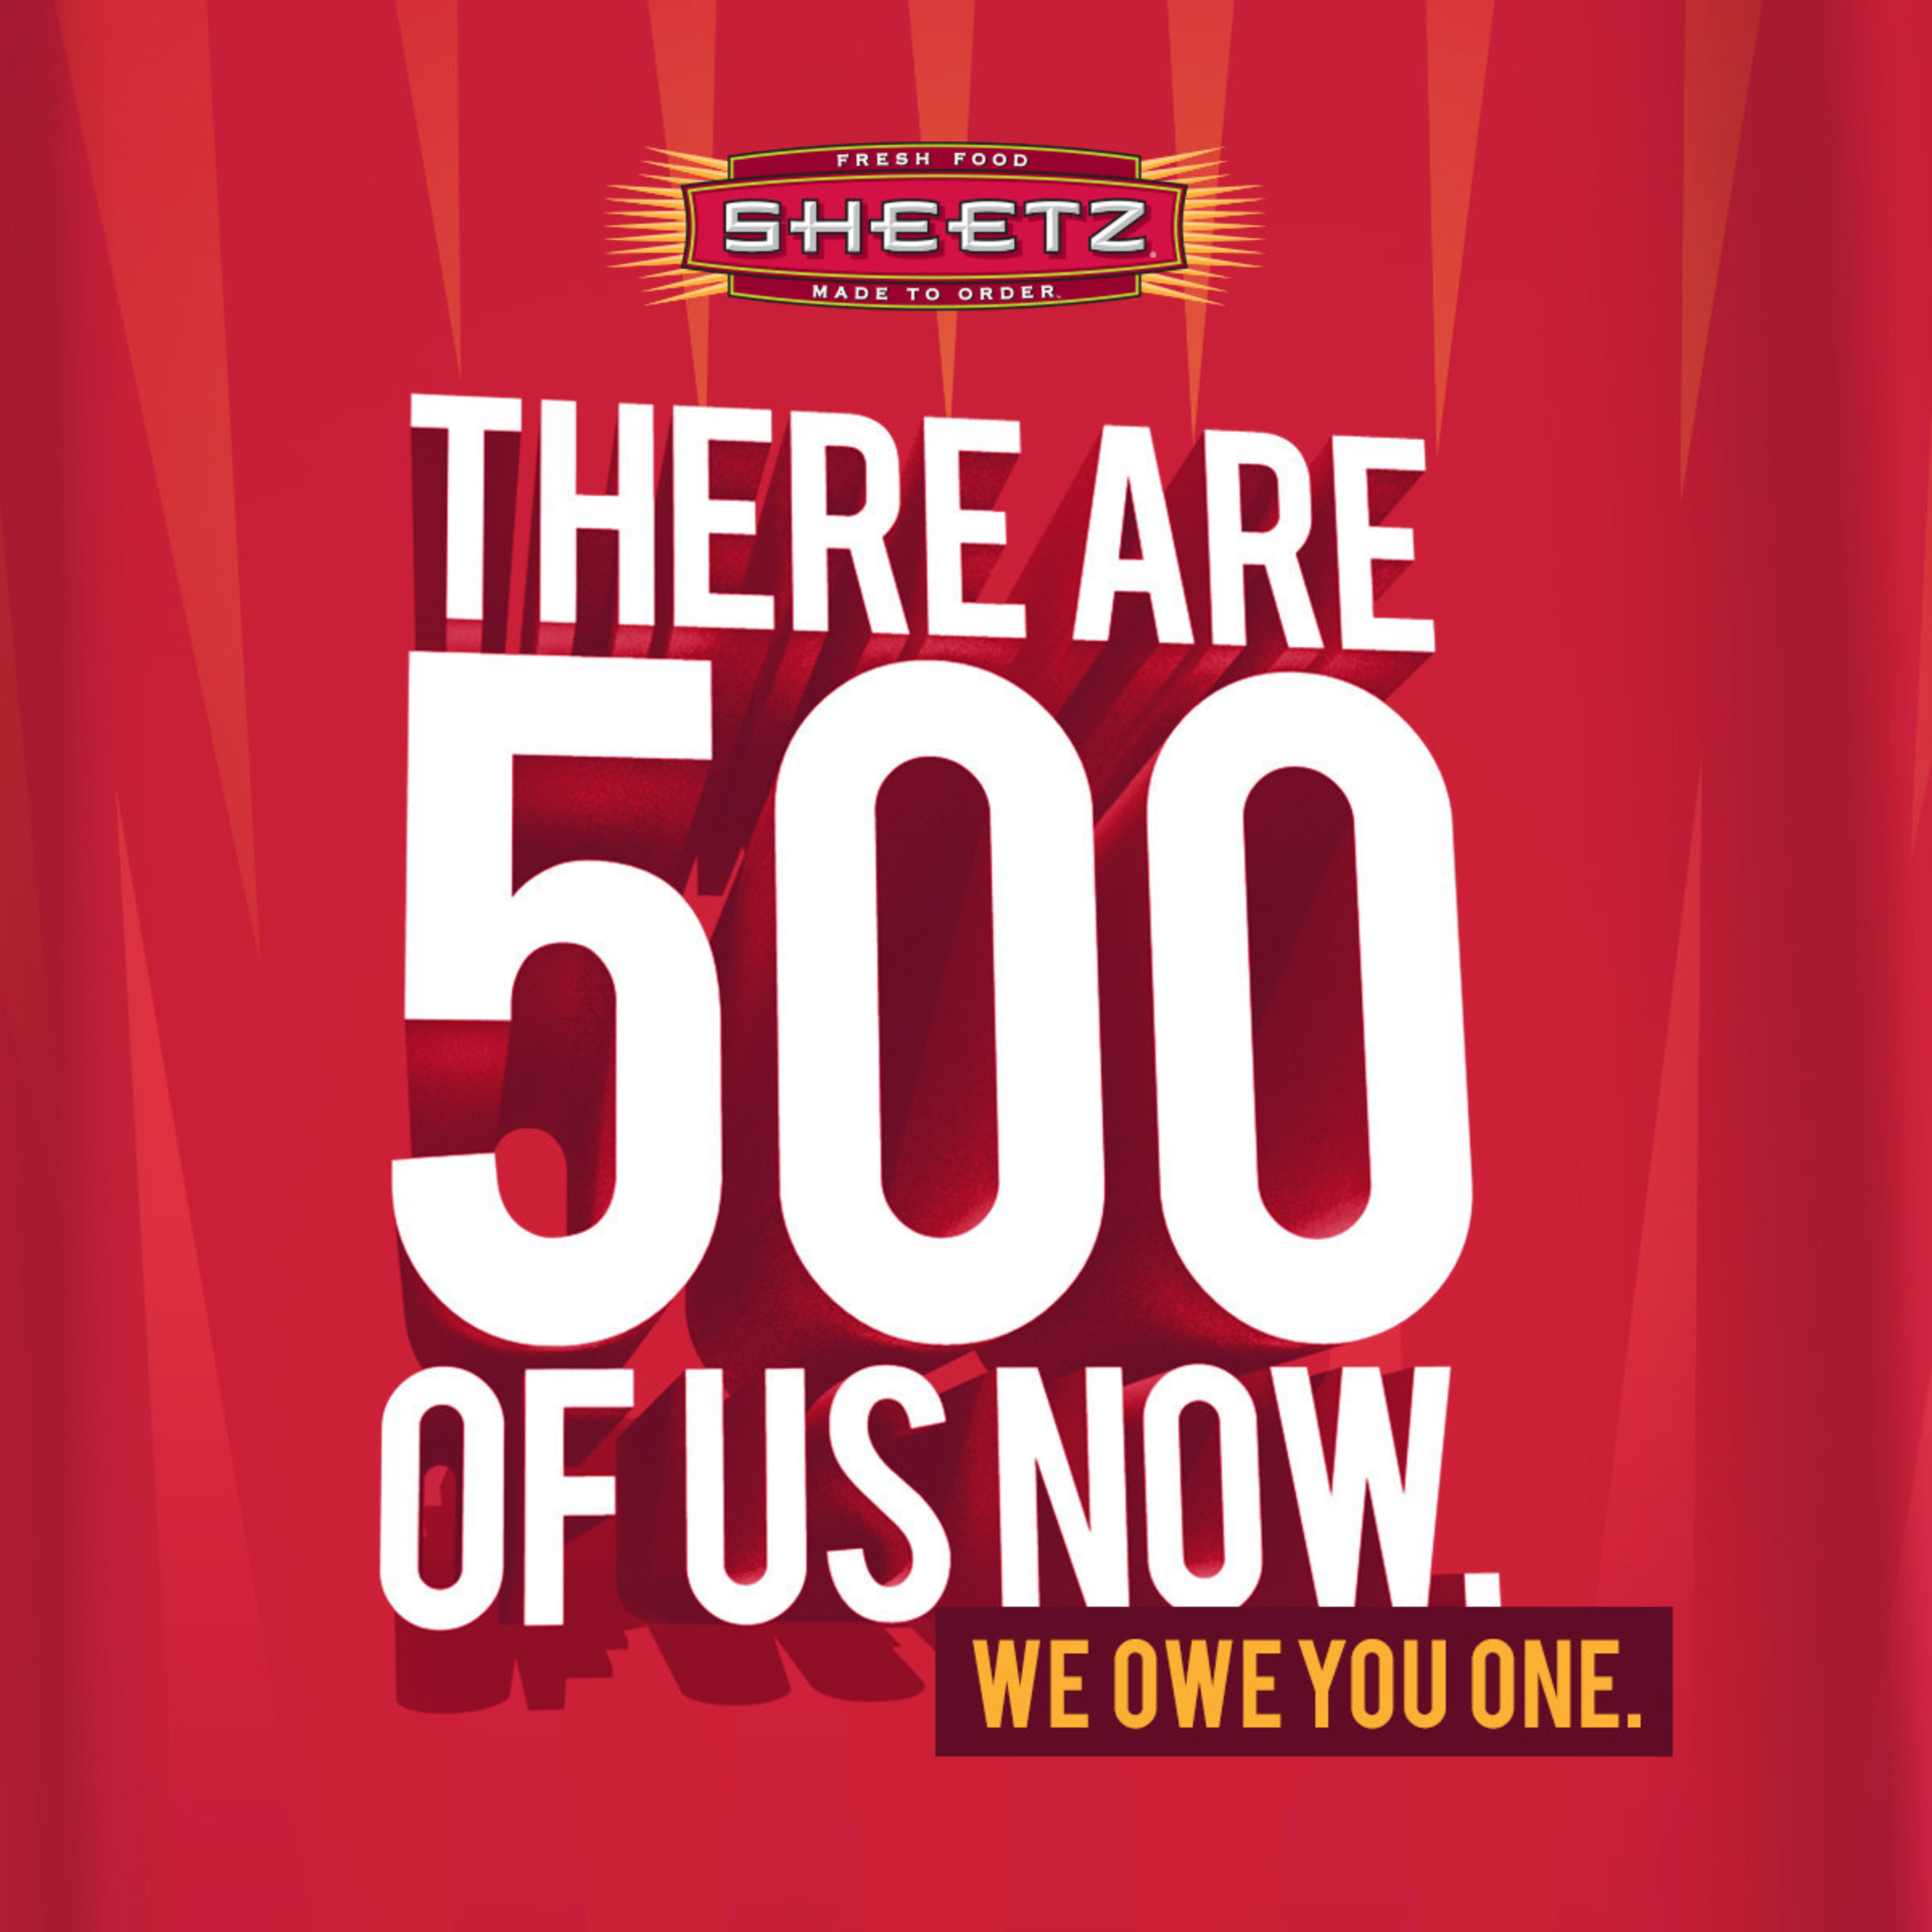 Sheetz celebrates its 500th store with free coffee and fountain drinks in all stores on Tuesday, February 24, 2015.